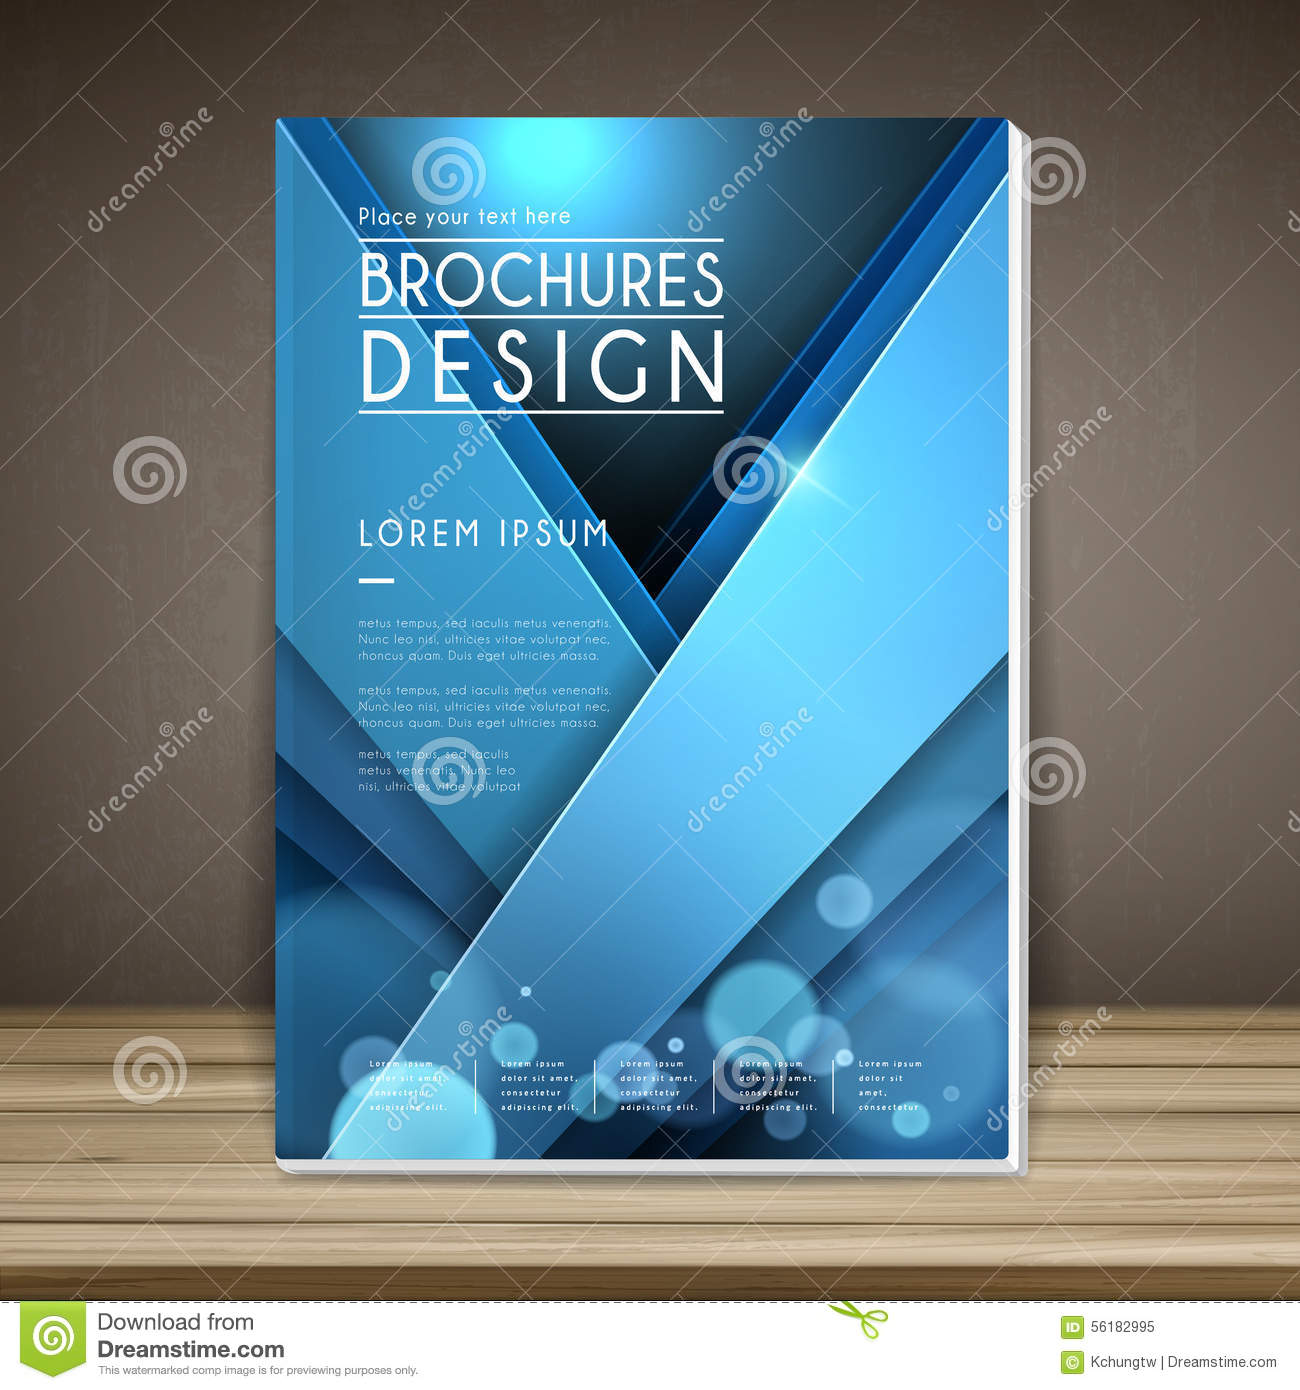 Book Cover Design Elegant : Elegant book cover template design stock vector image